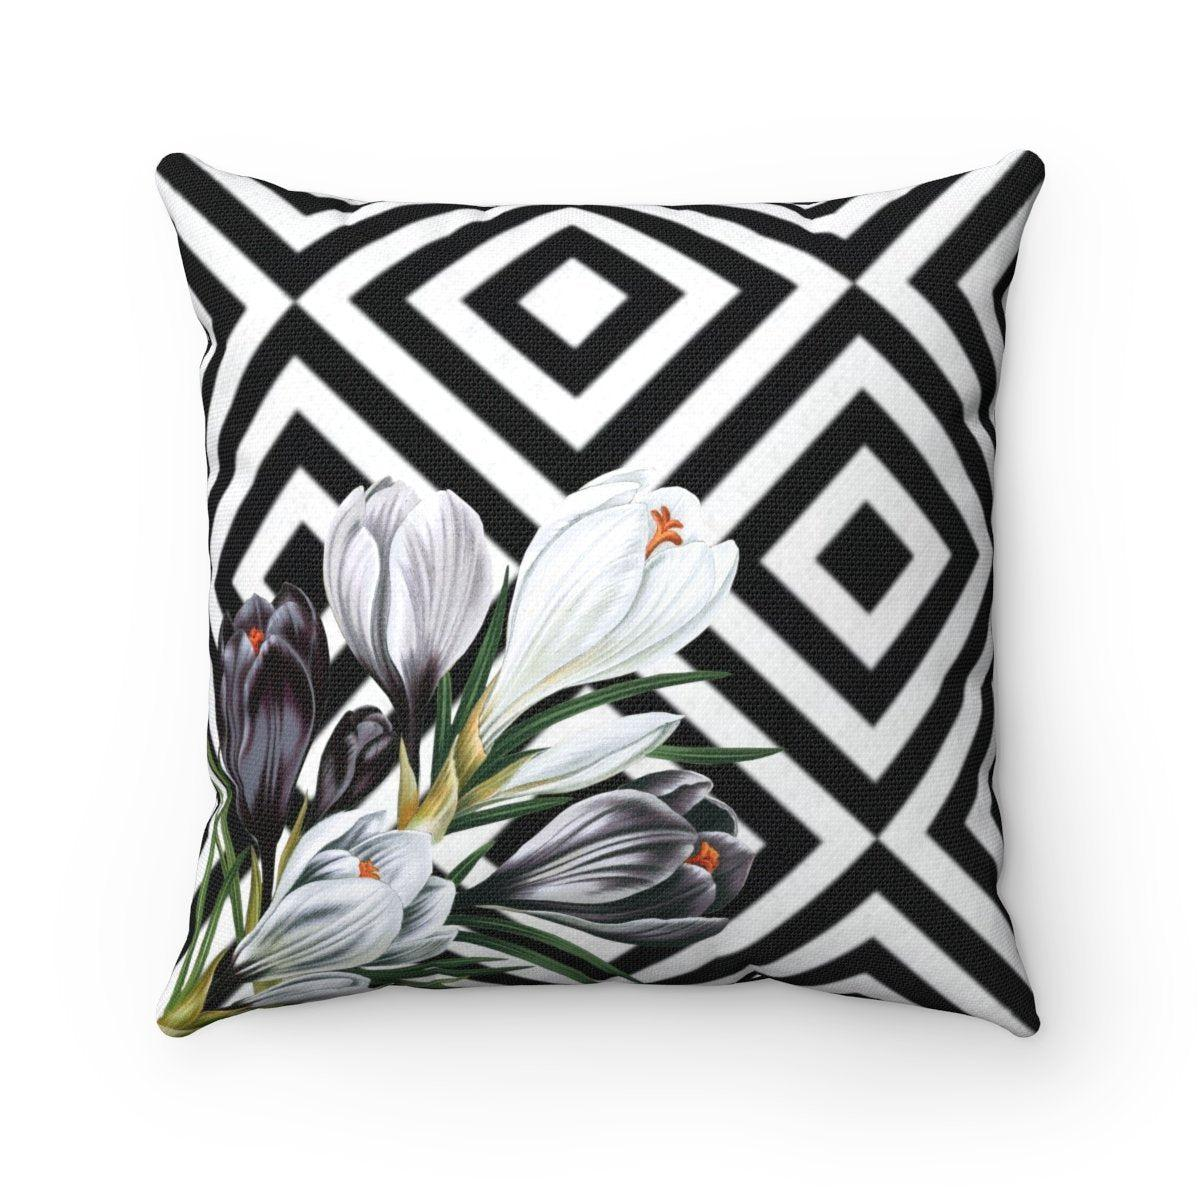 Luxury tulips abstract decorative cushion cover-Home Decor - Decorative Accents - Pillows & Throws - Decorative Pillows-Maison d'Elite-14x14-Très Elite